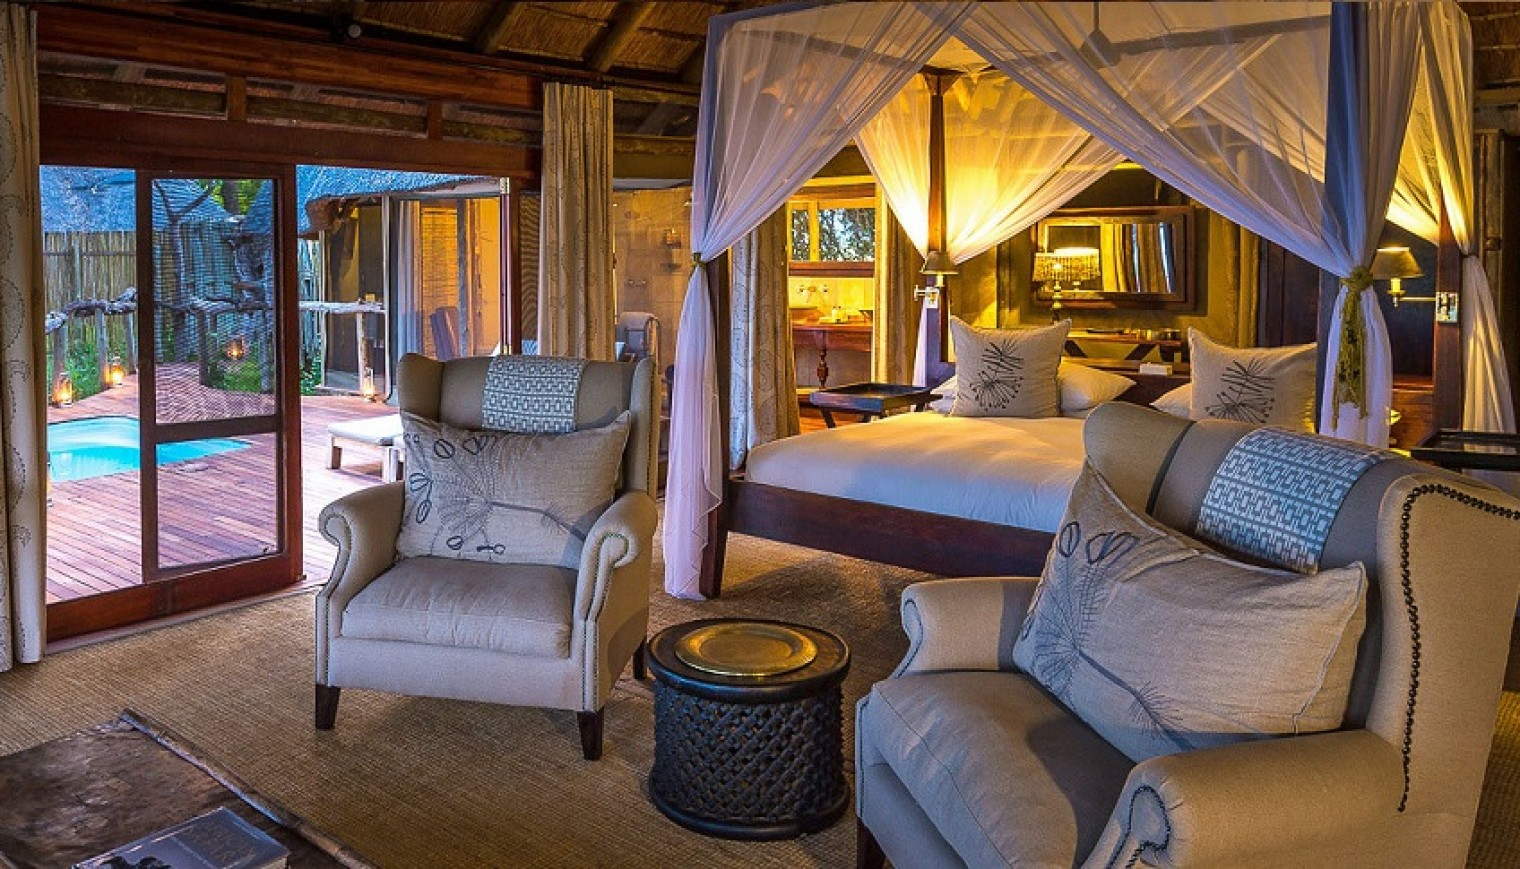 Top 10 luxury safari lodges and camps